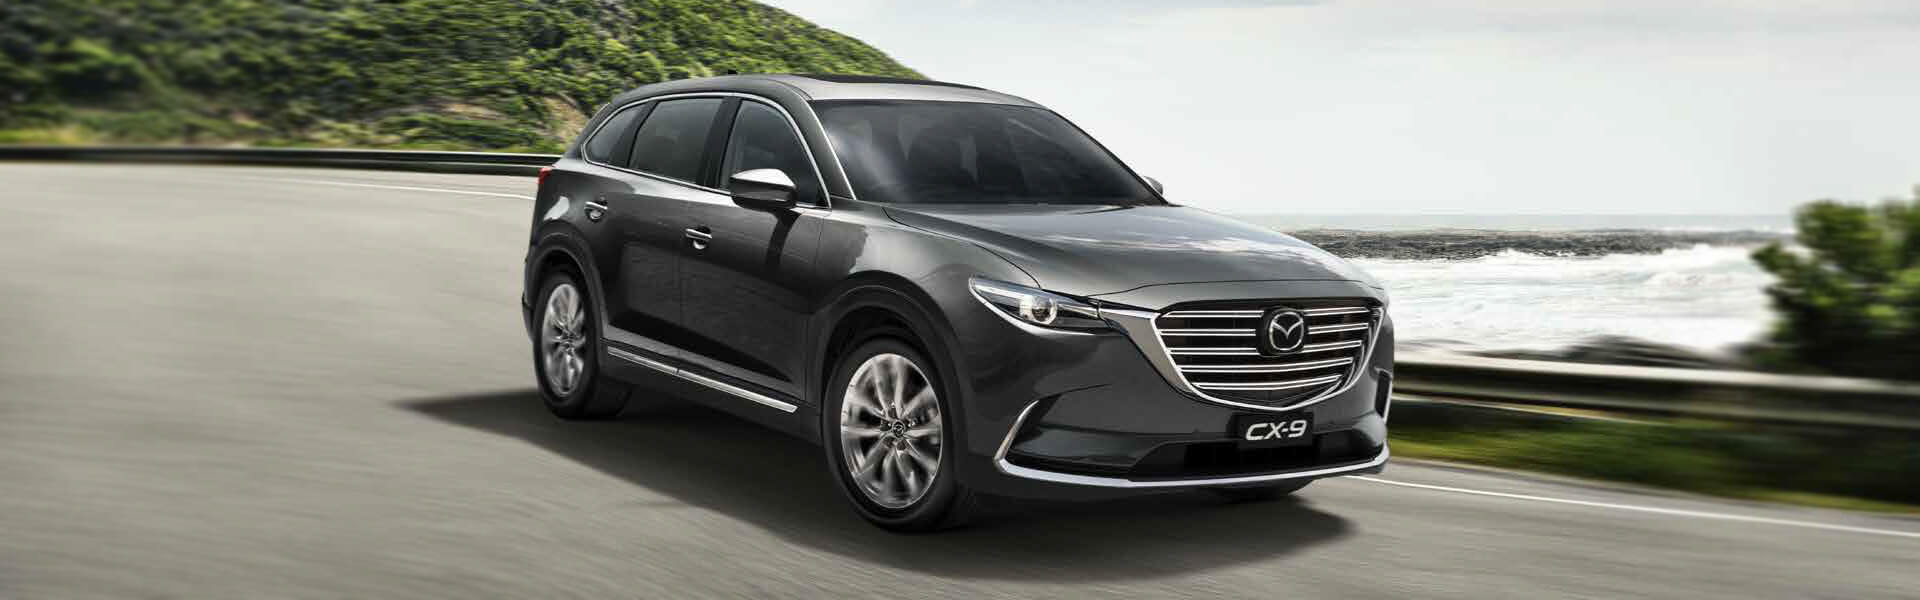 CX-9 ADAPTS TO YOUR LIFESTYLE